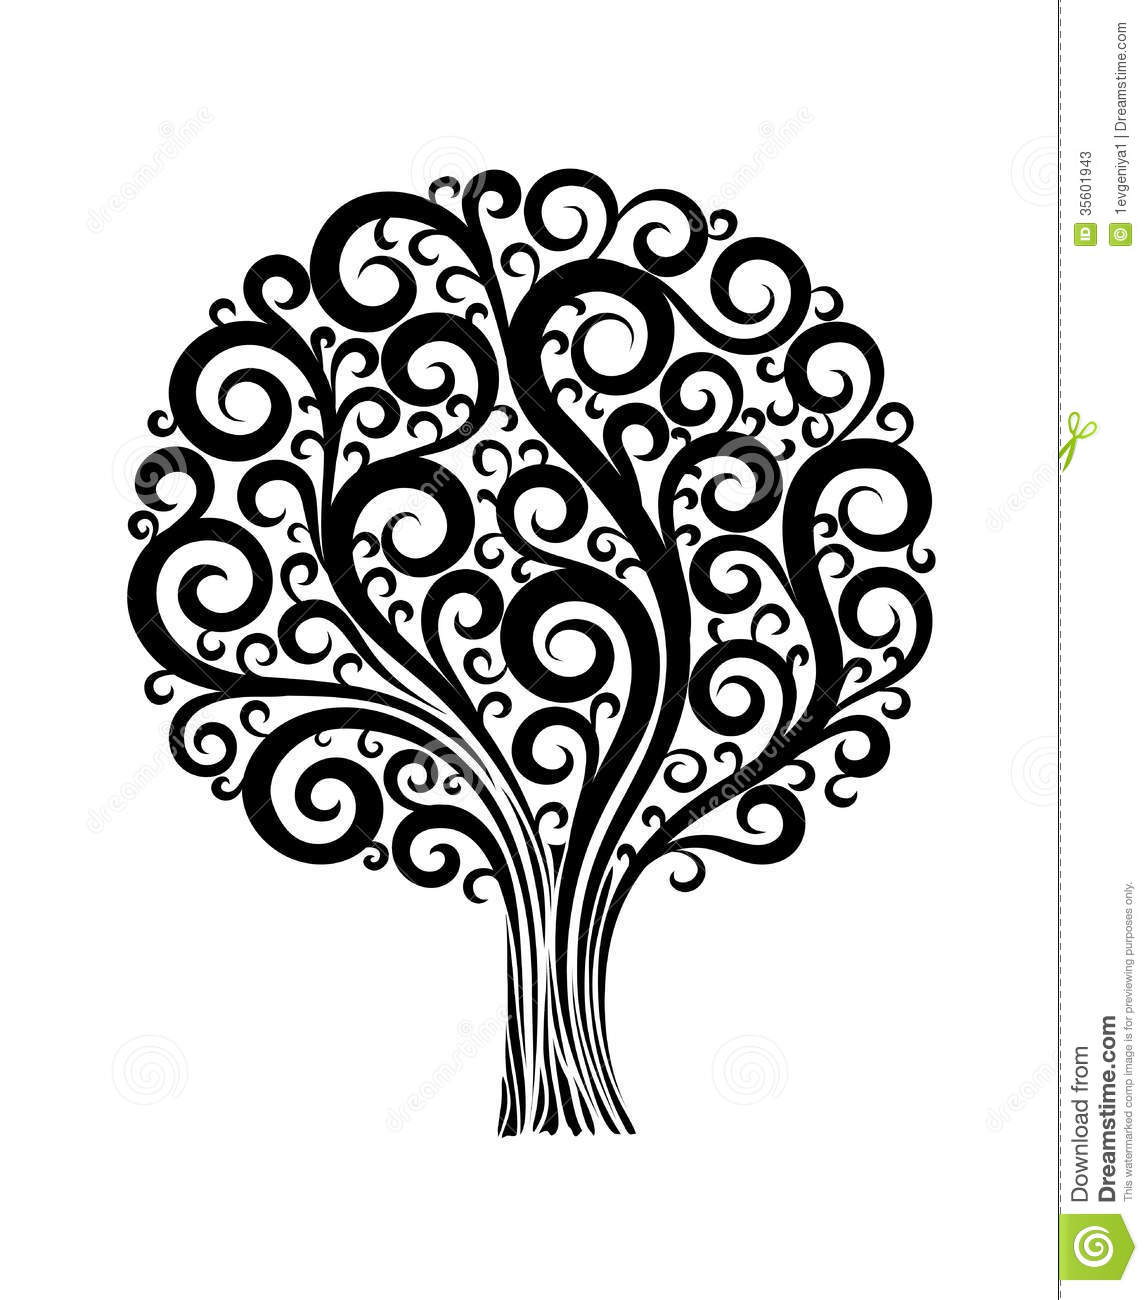 Black tree in flower design with swirls and flouri stock vector black tree in flower design with swirls and flouri mightylinksfo